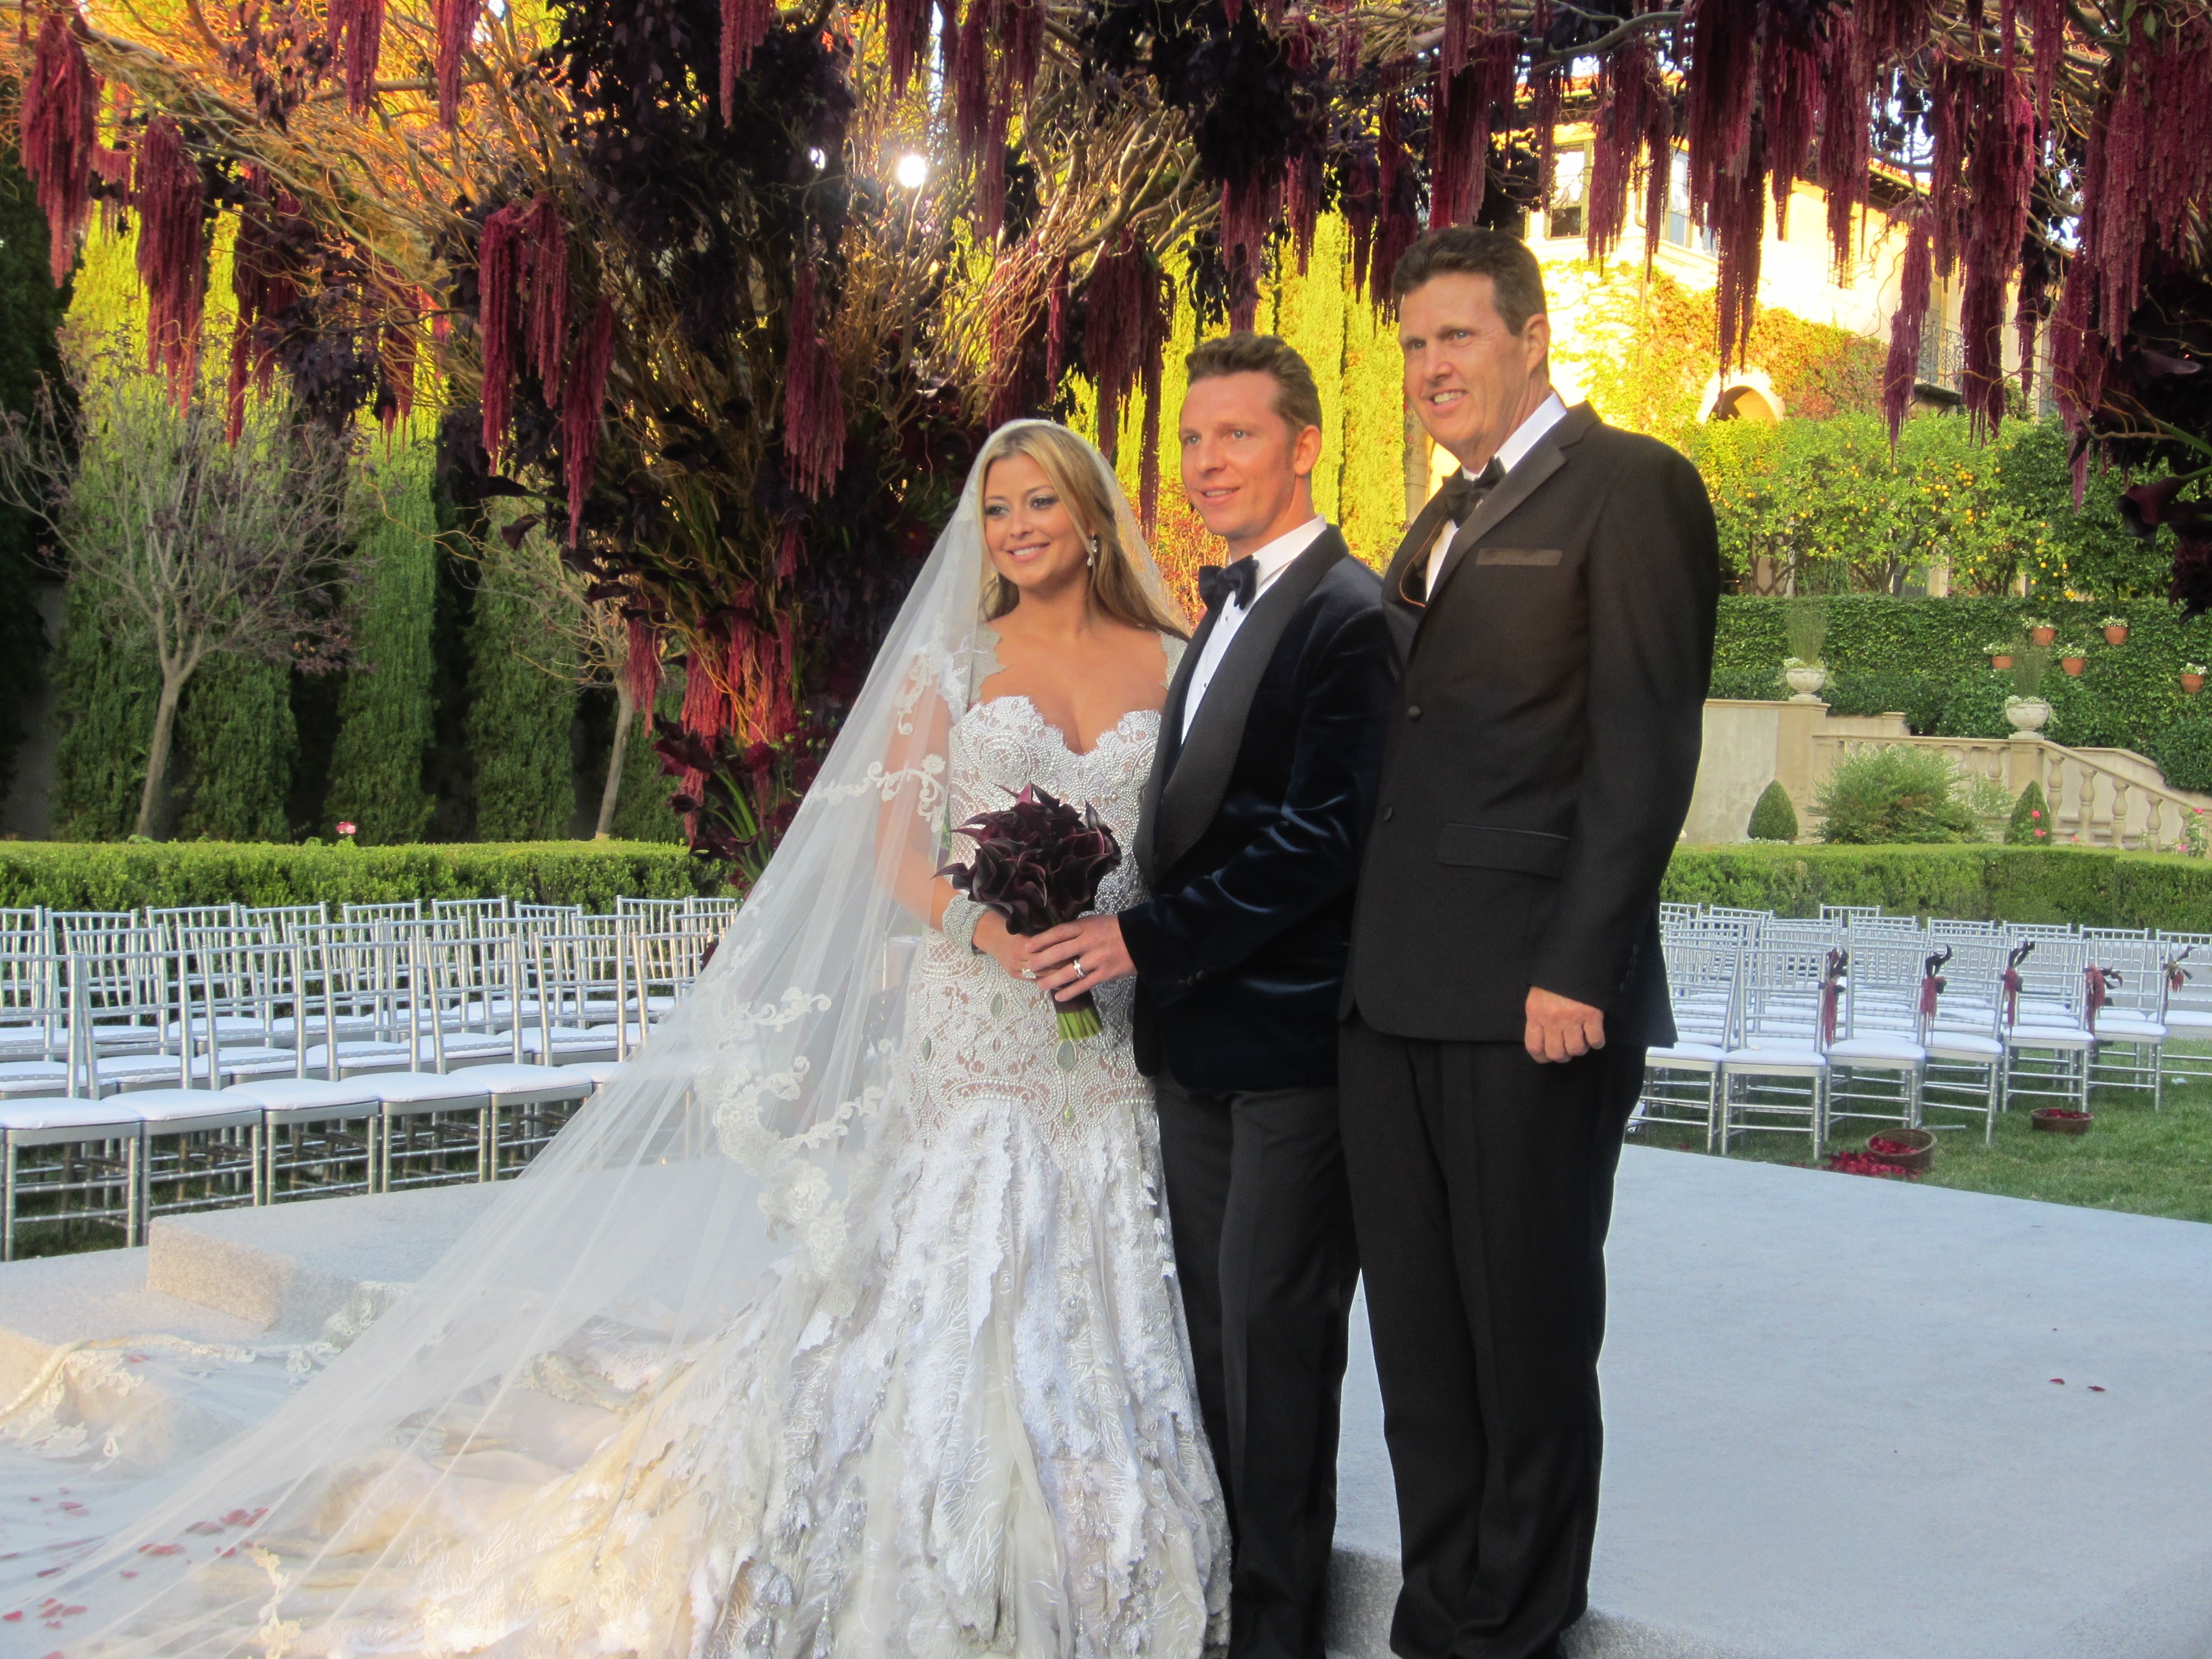 Beverly Hills Wedding Nick Candy And Holly Valance Holly